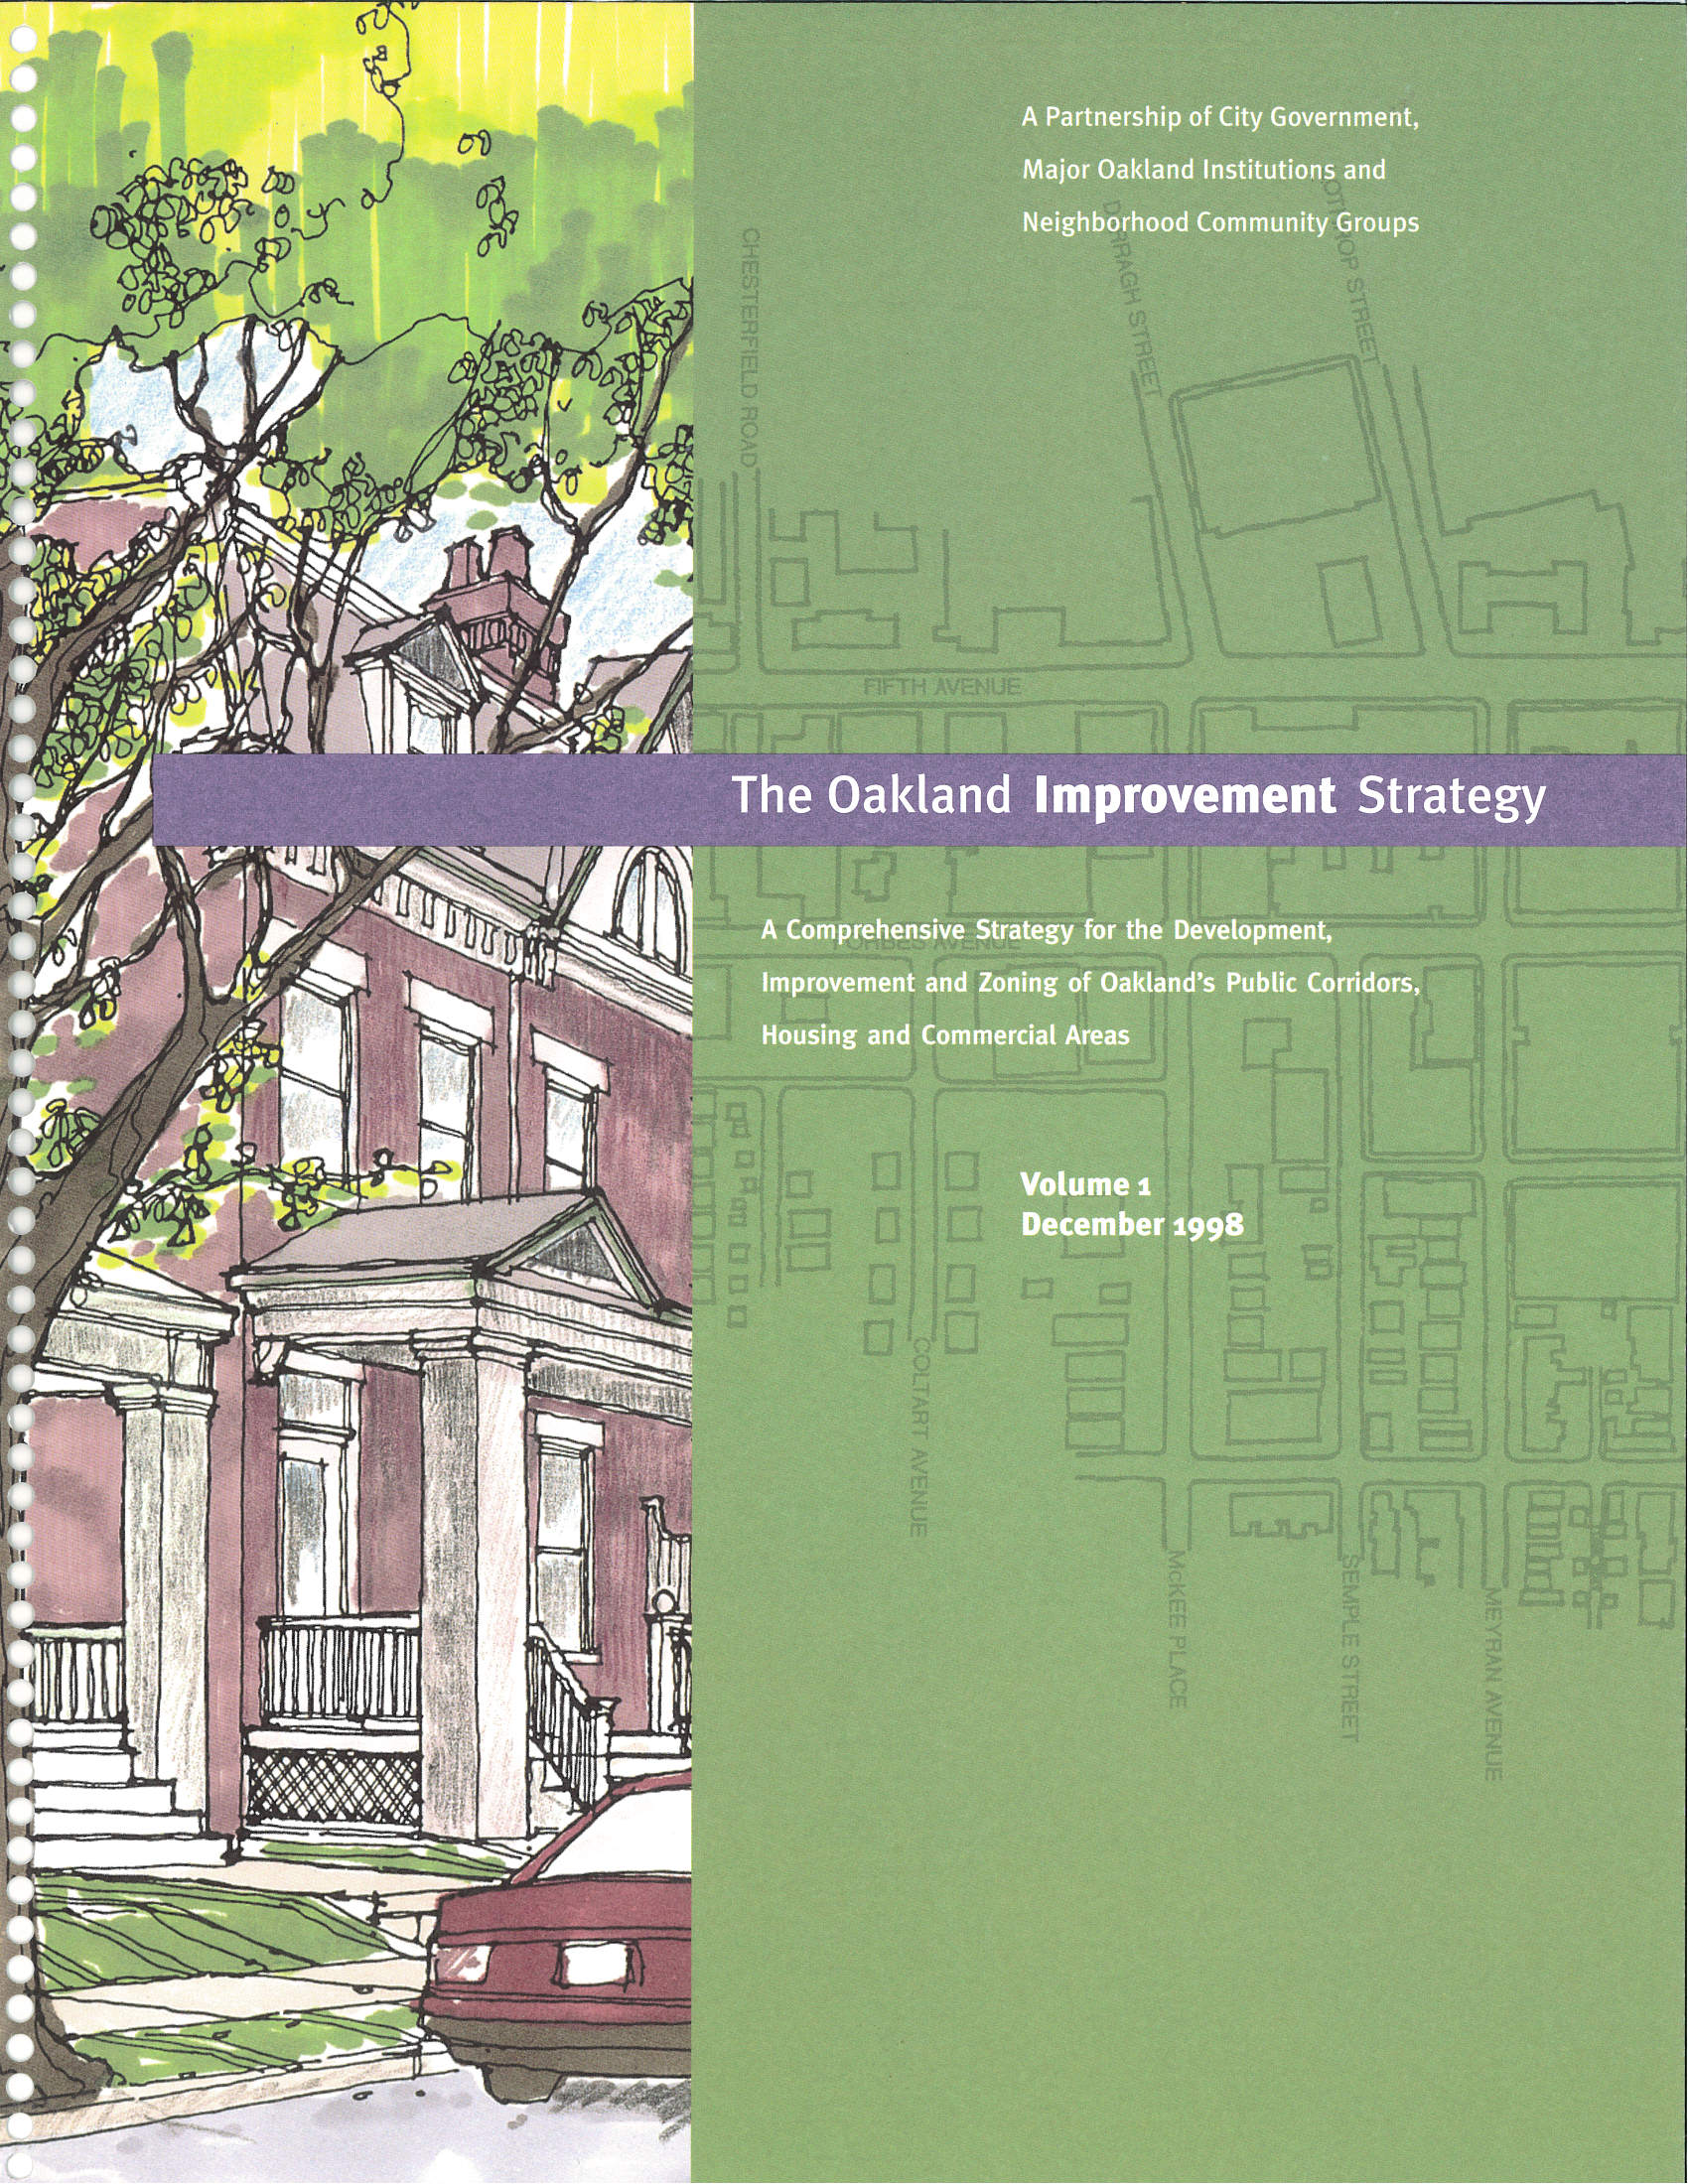 The Oakland Improvement Strategy-Cover.jpg